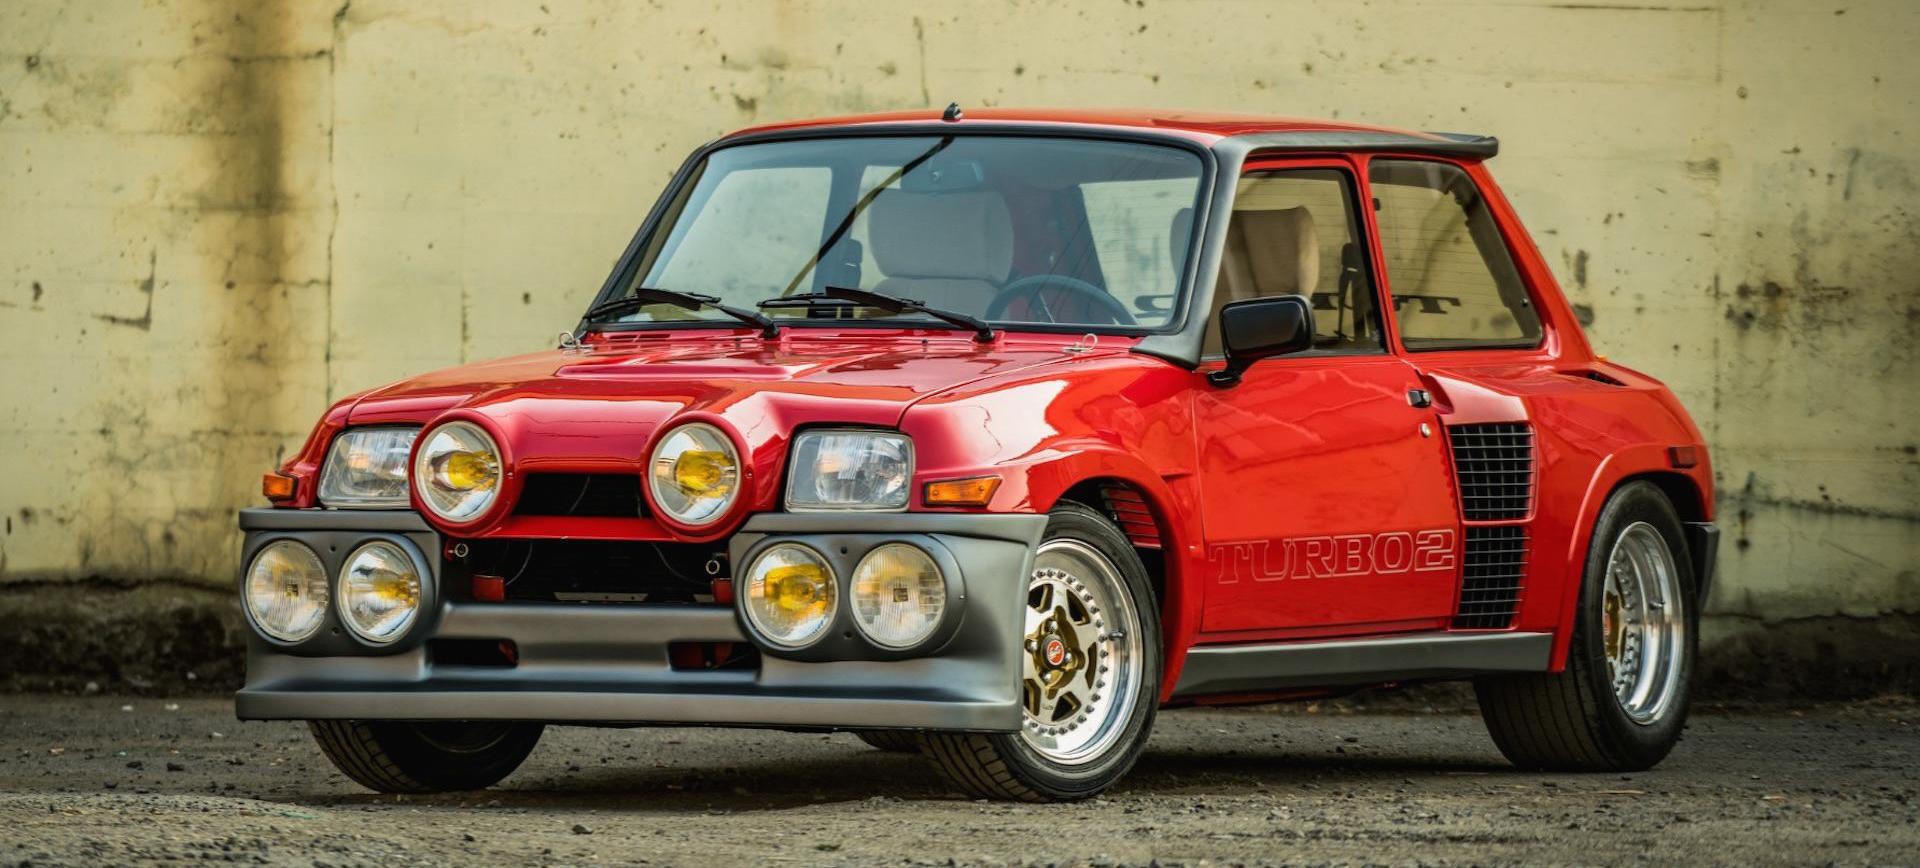 Renault R5 Turbo 2 Evo